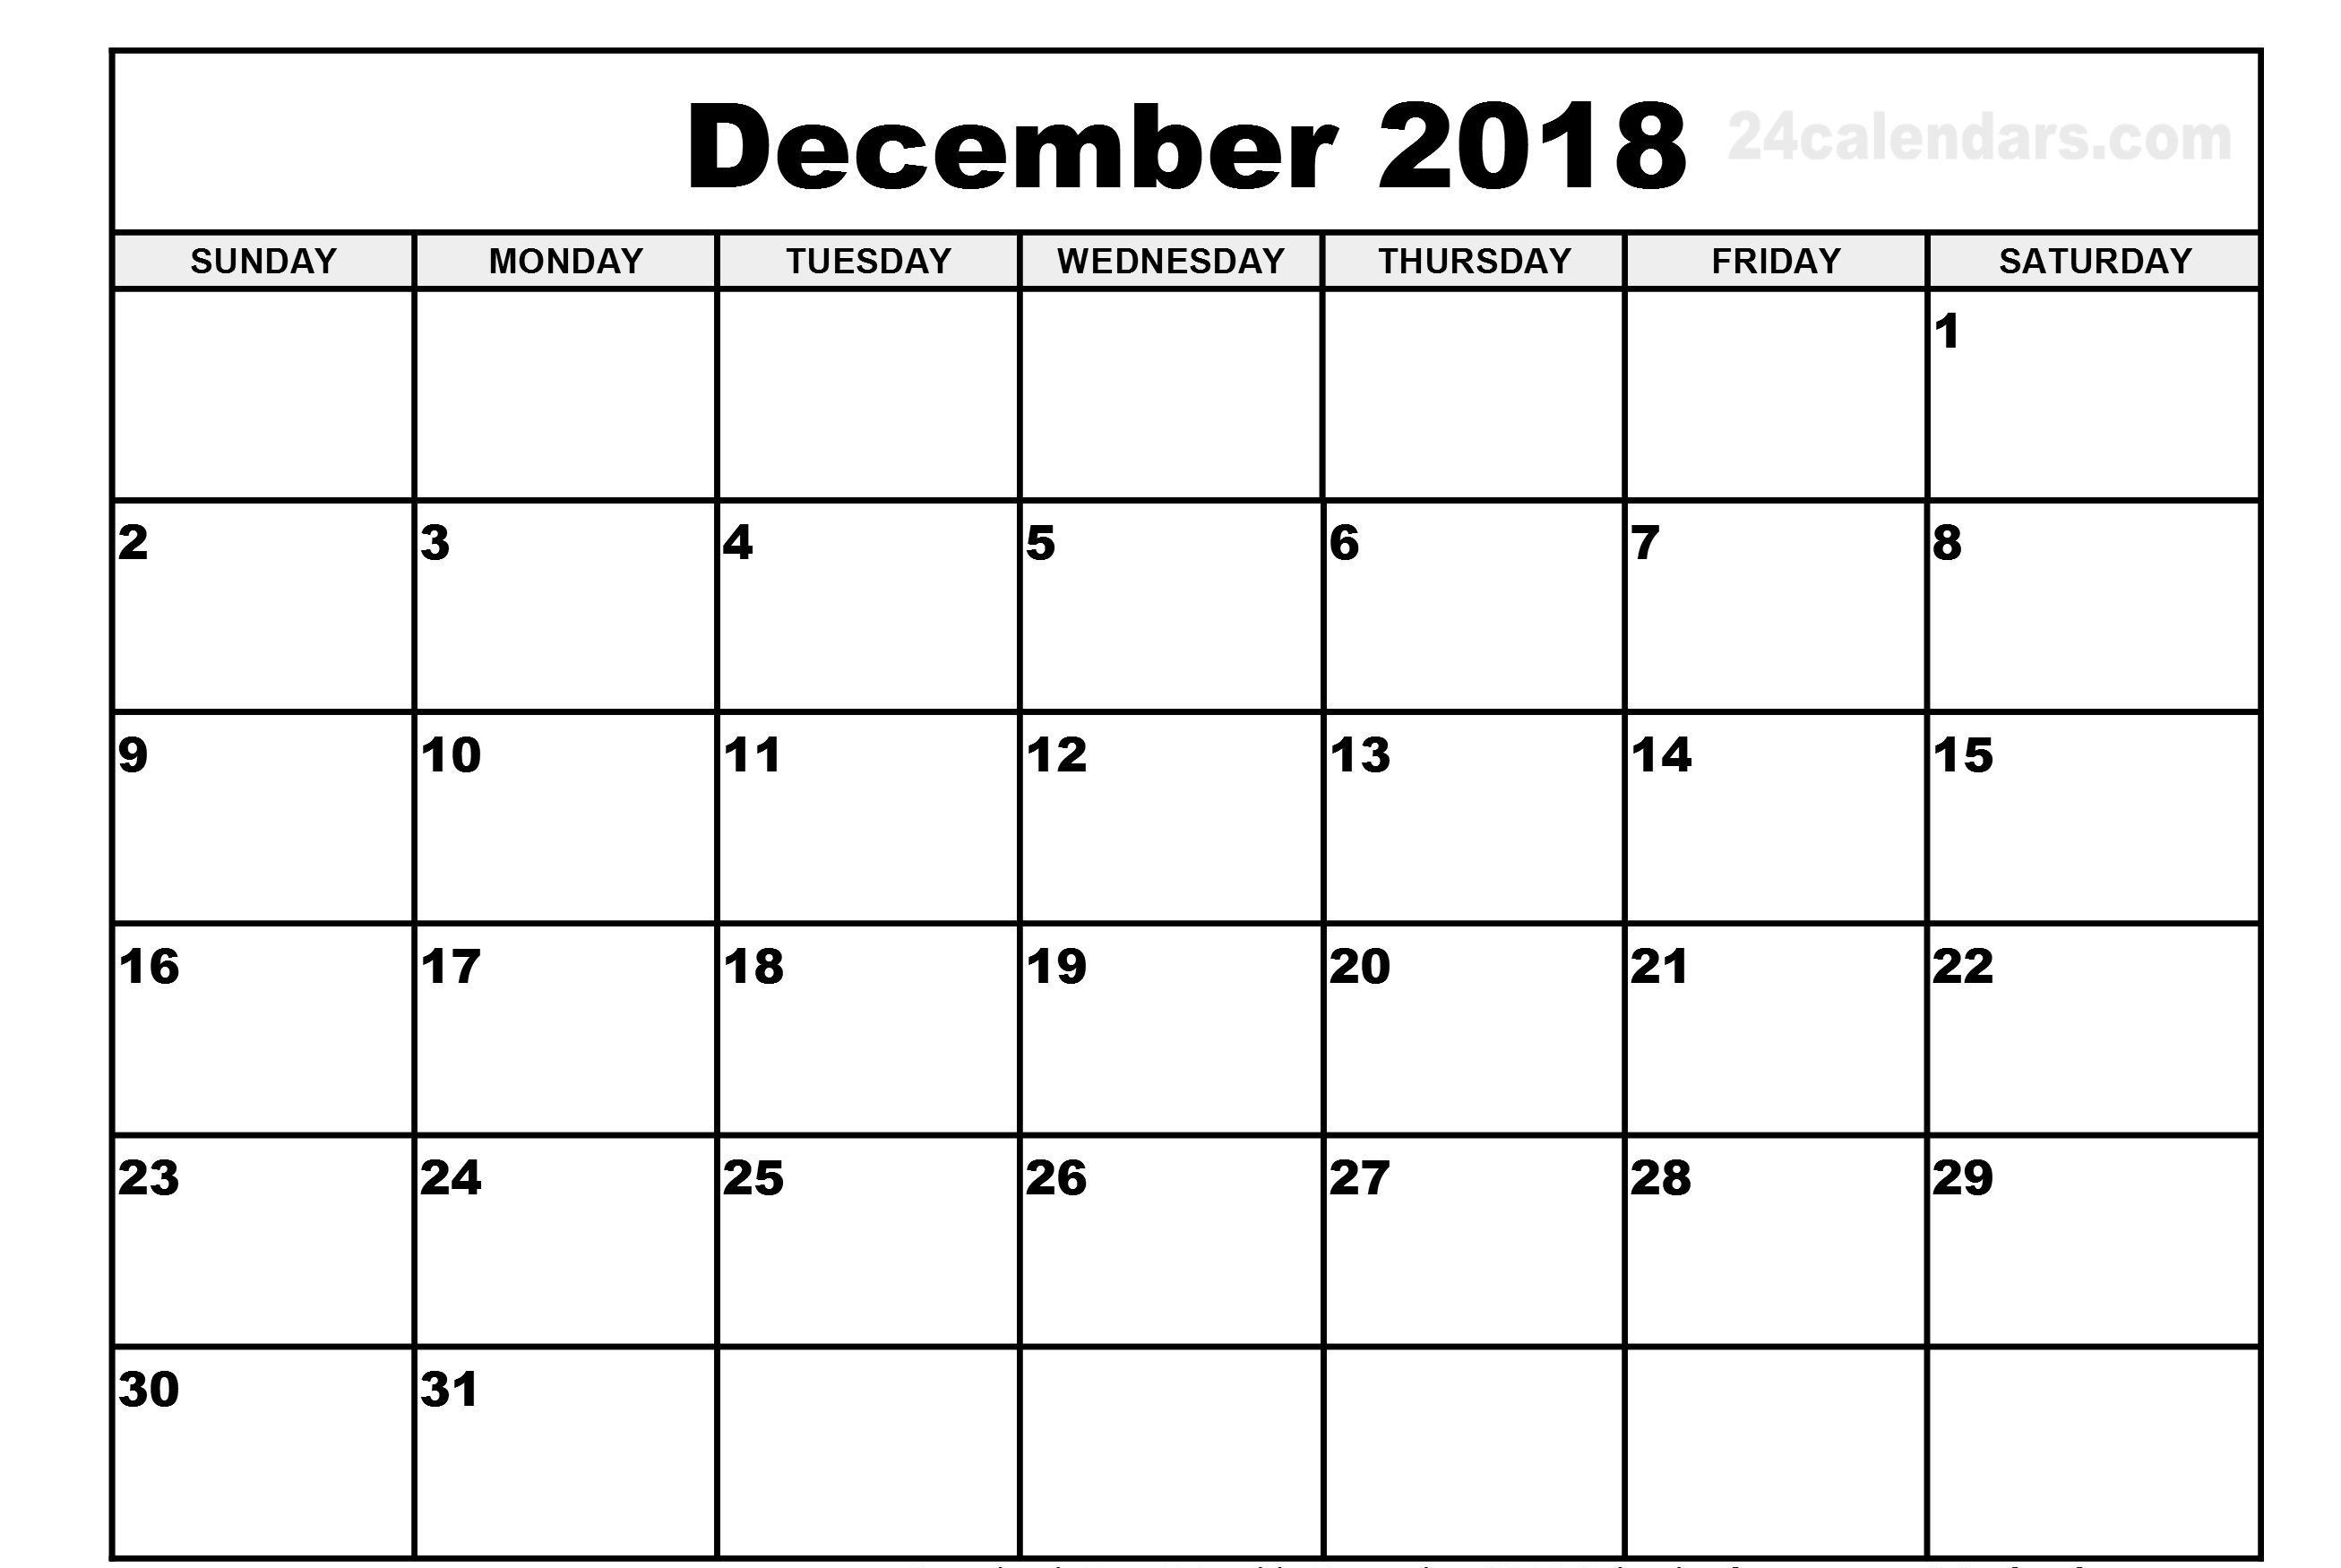 December Weekend Calendar 2018 Printable | Calendar Format-Calendar Template No Weekends